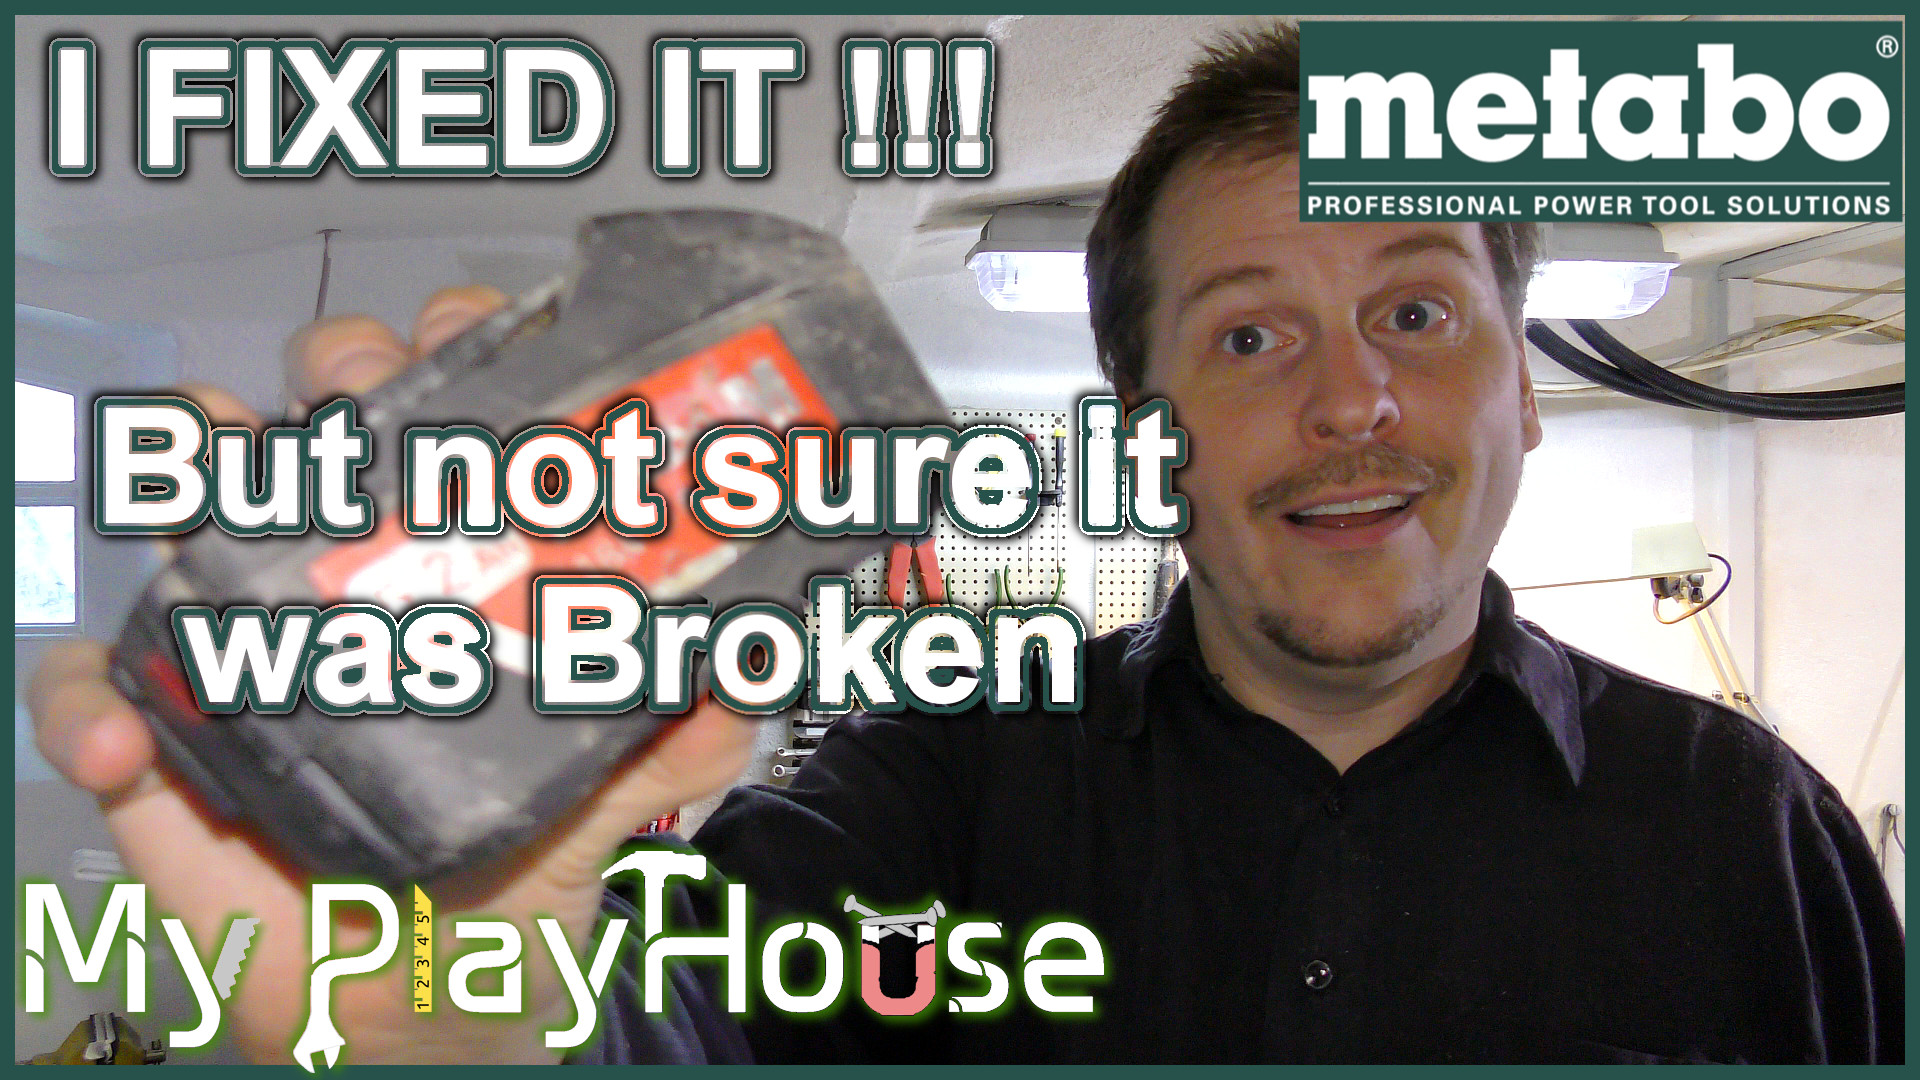 Metabo - 5.2 Ah Battery Pack FIXED, but was it Broken - 744